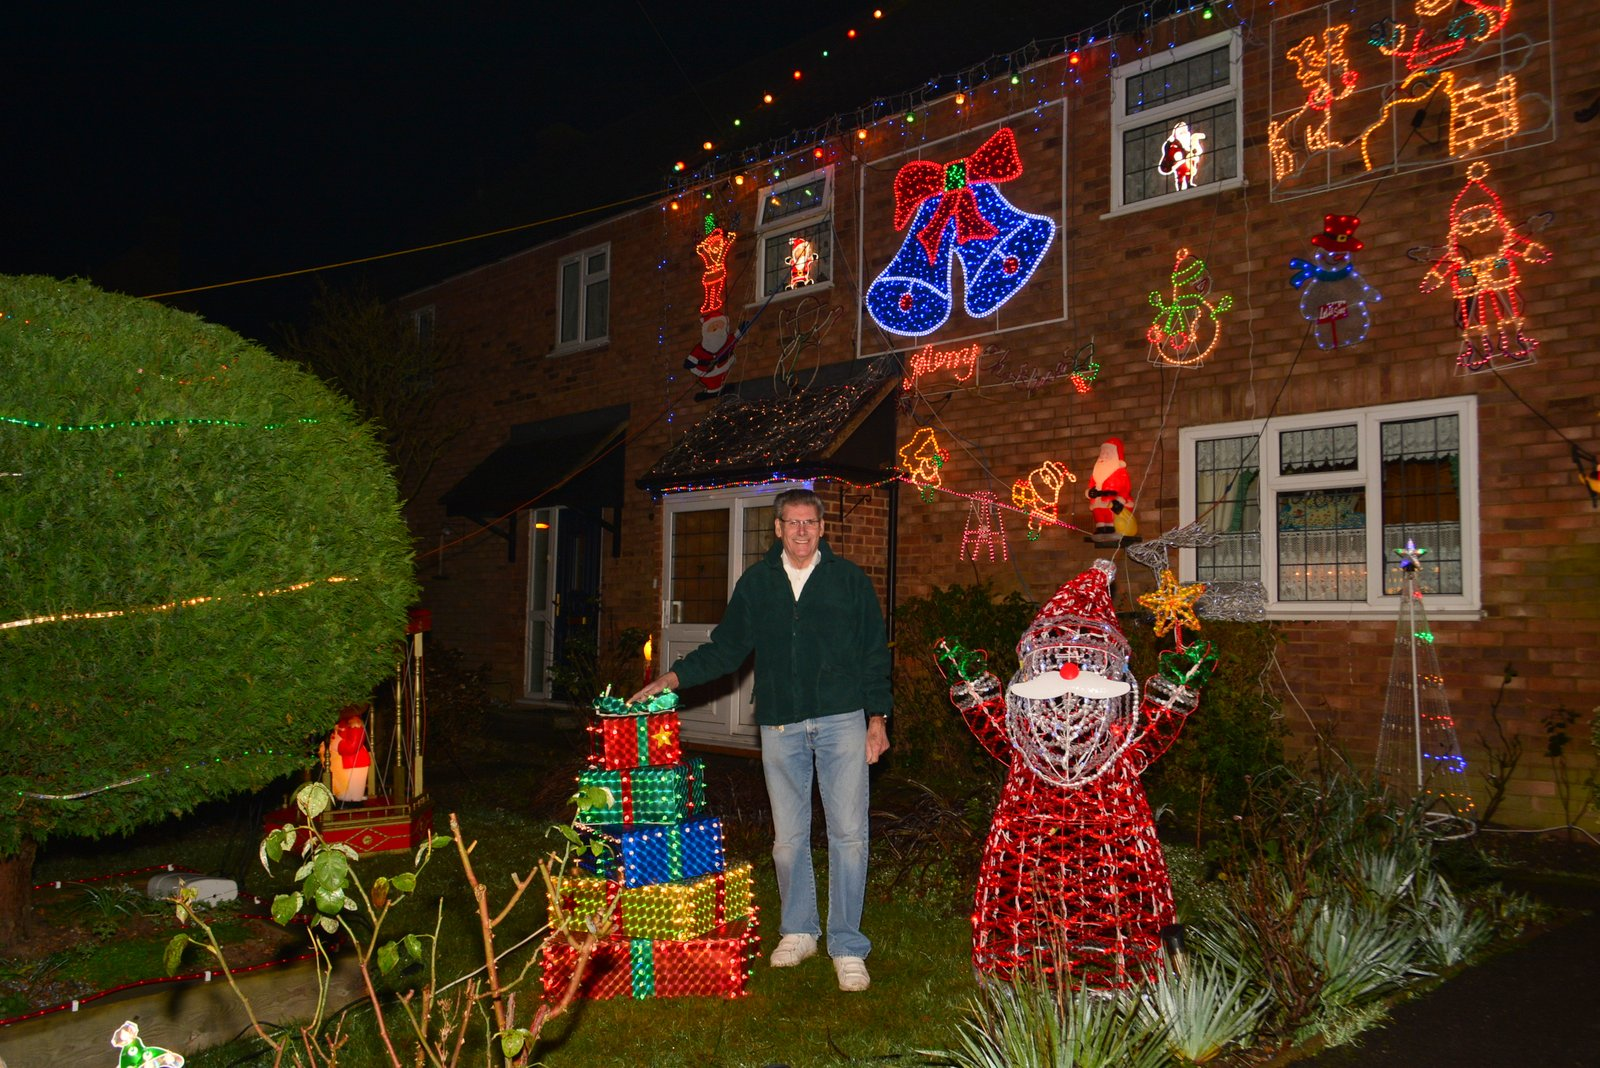 Mr Christmas set to light up Croxley Green on Saturday | My Local News